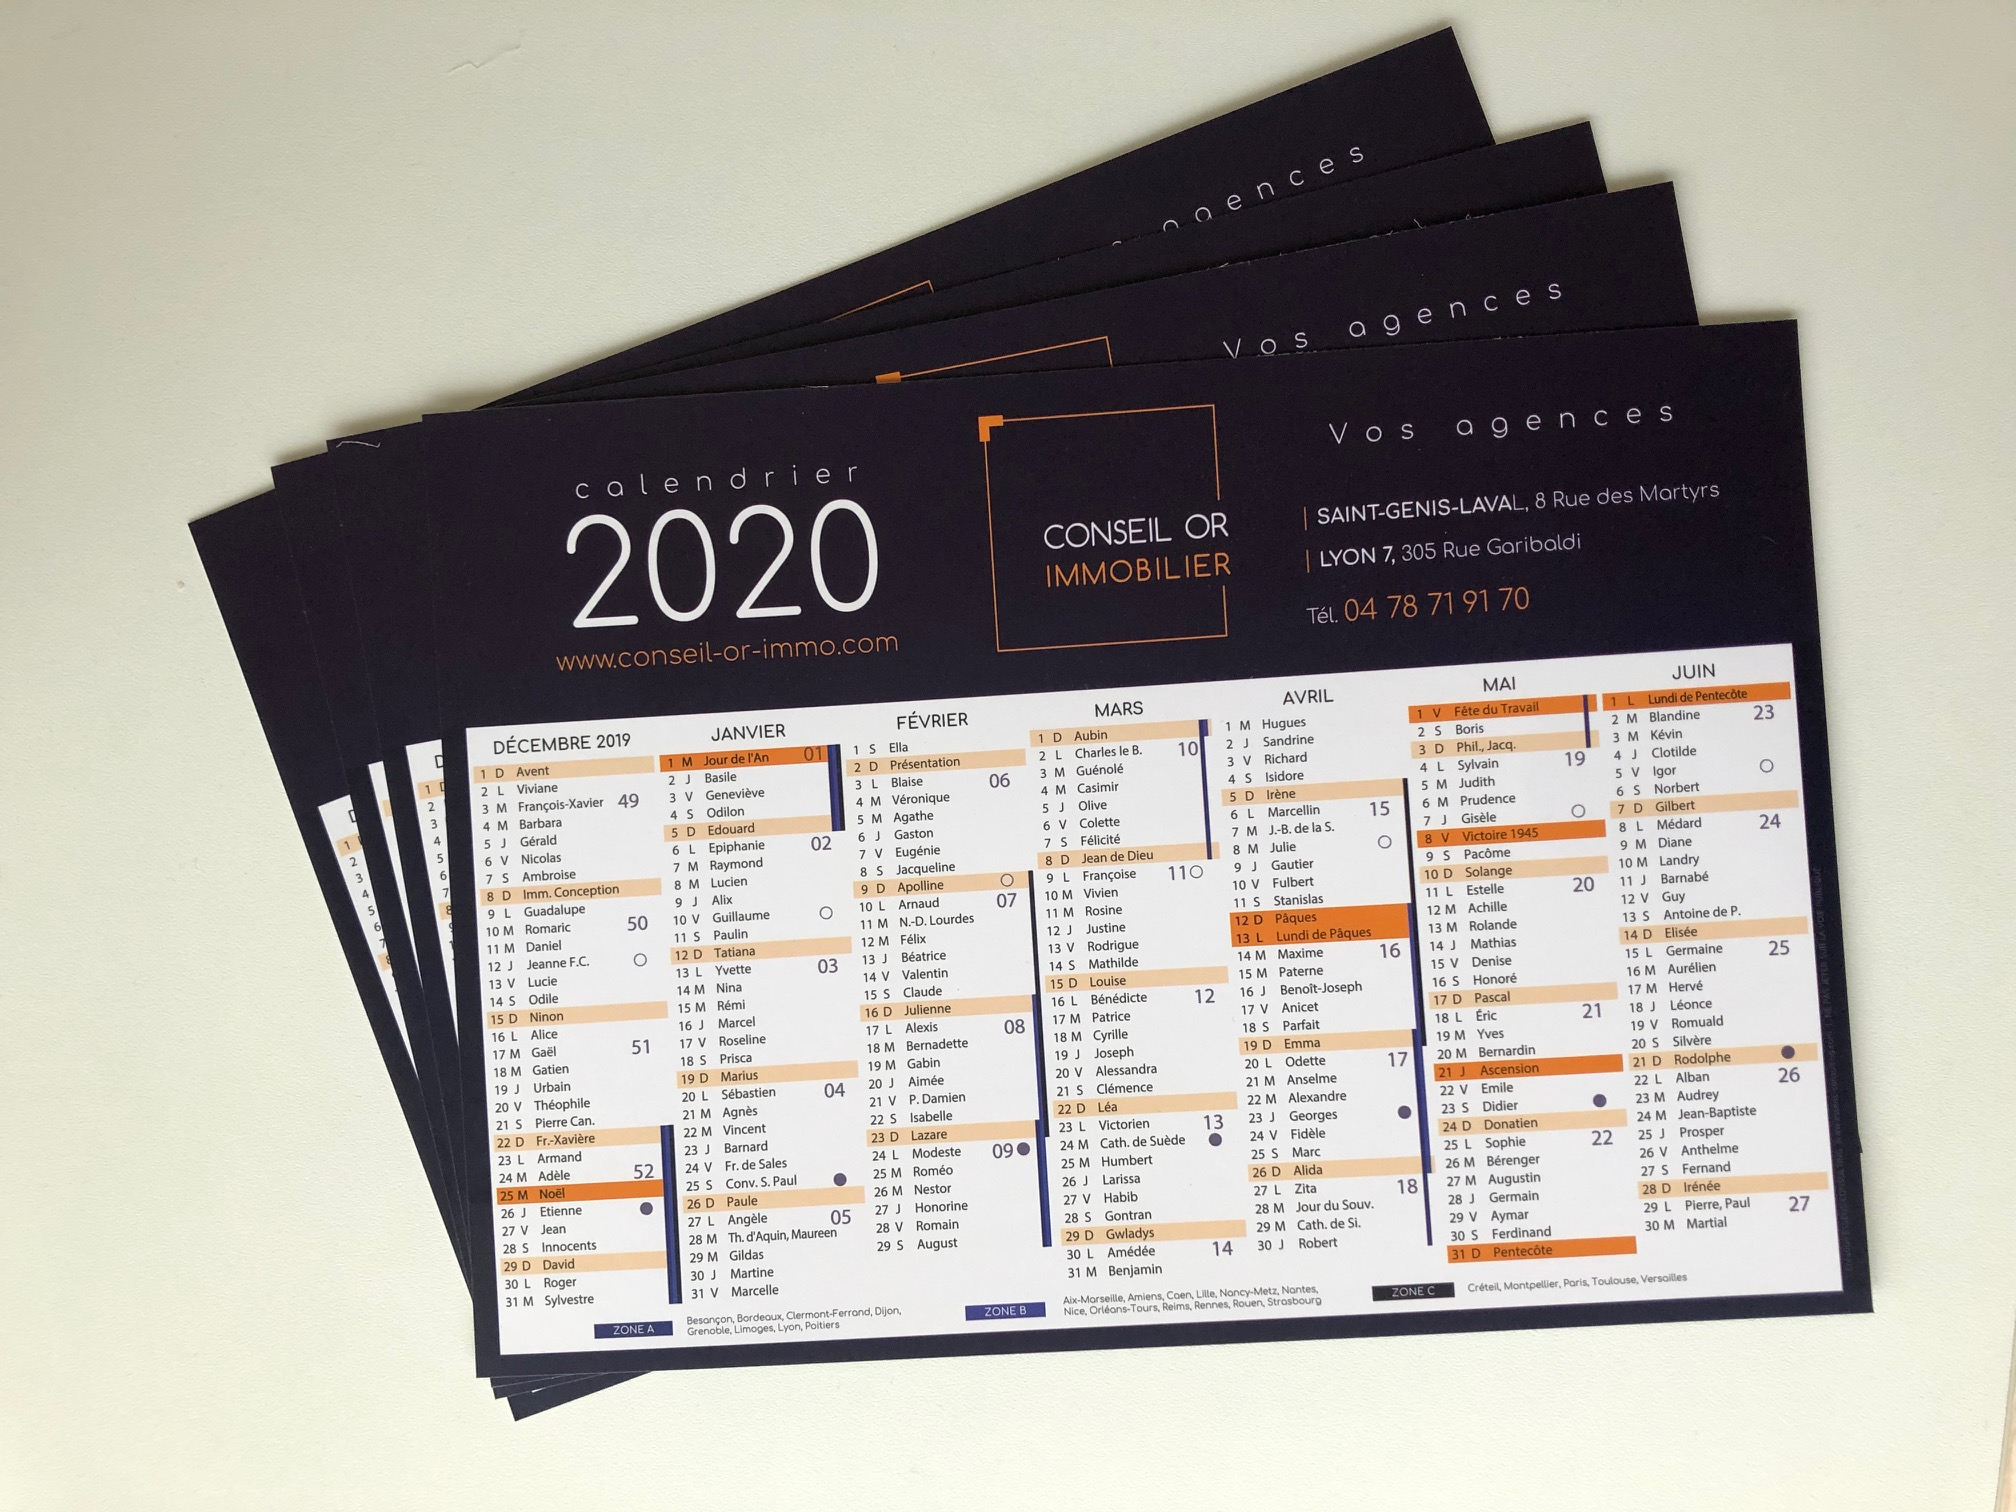 Calendrier 2020 CONSEIL OR IMMO